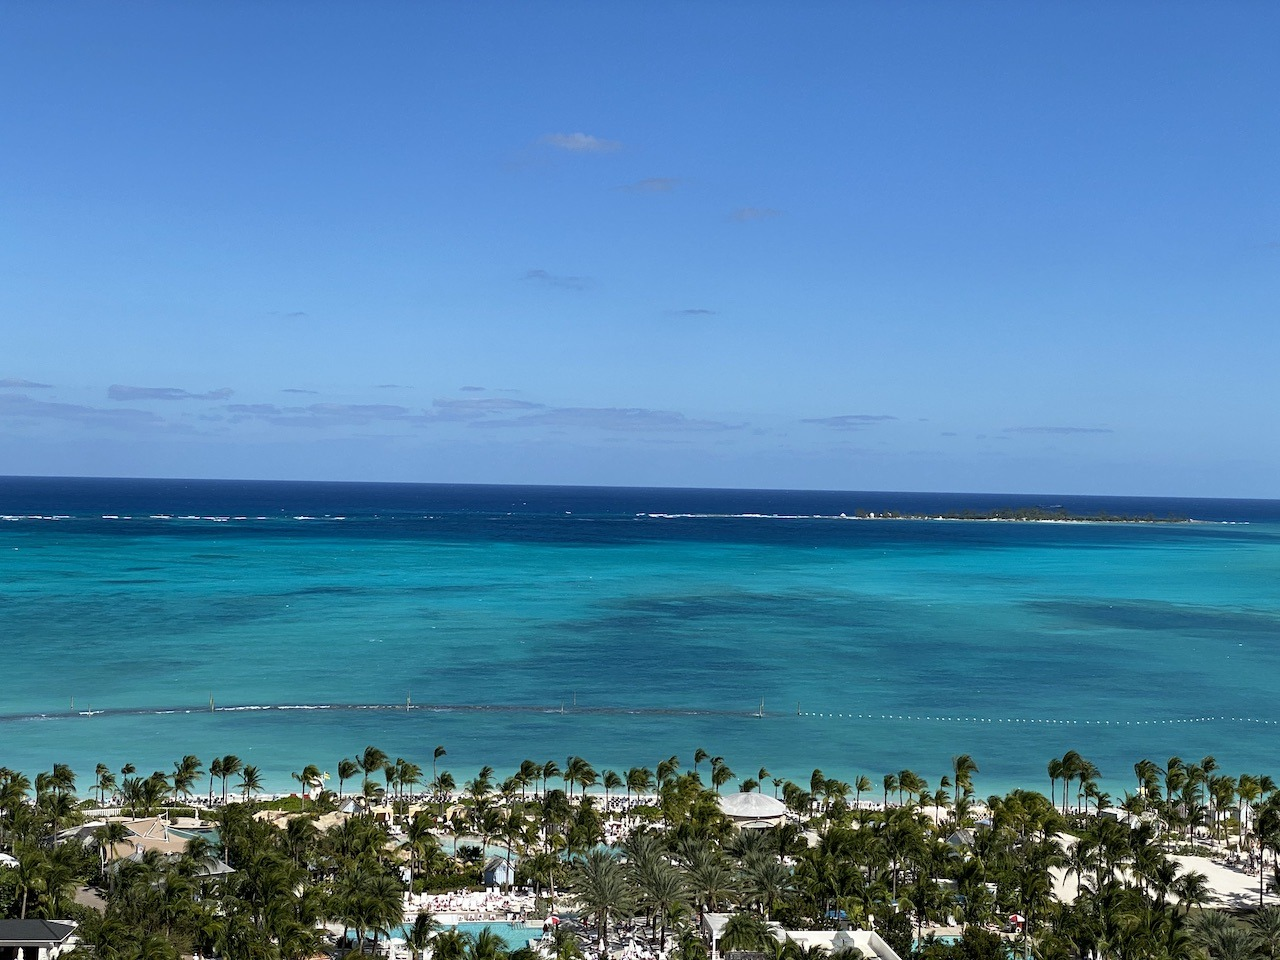 View from the Grand Hyatt Baha Mar suite